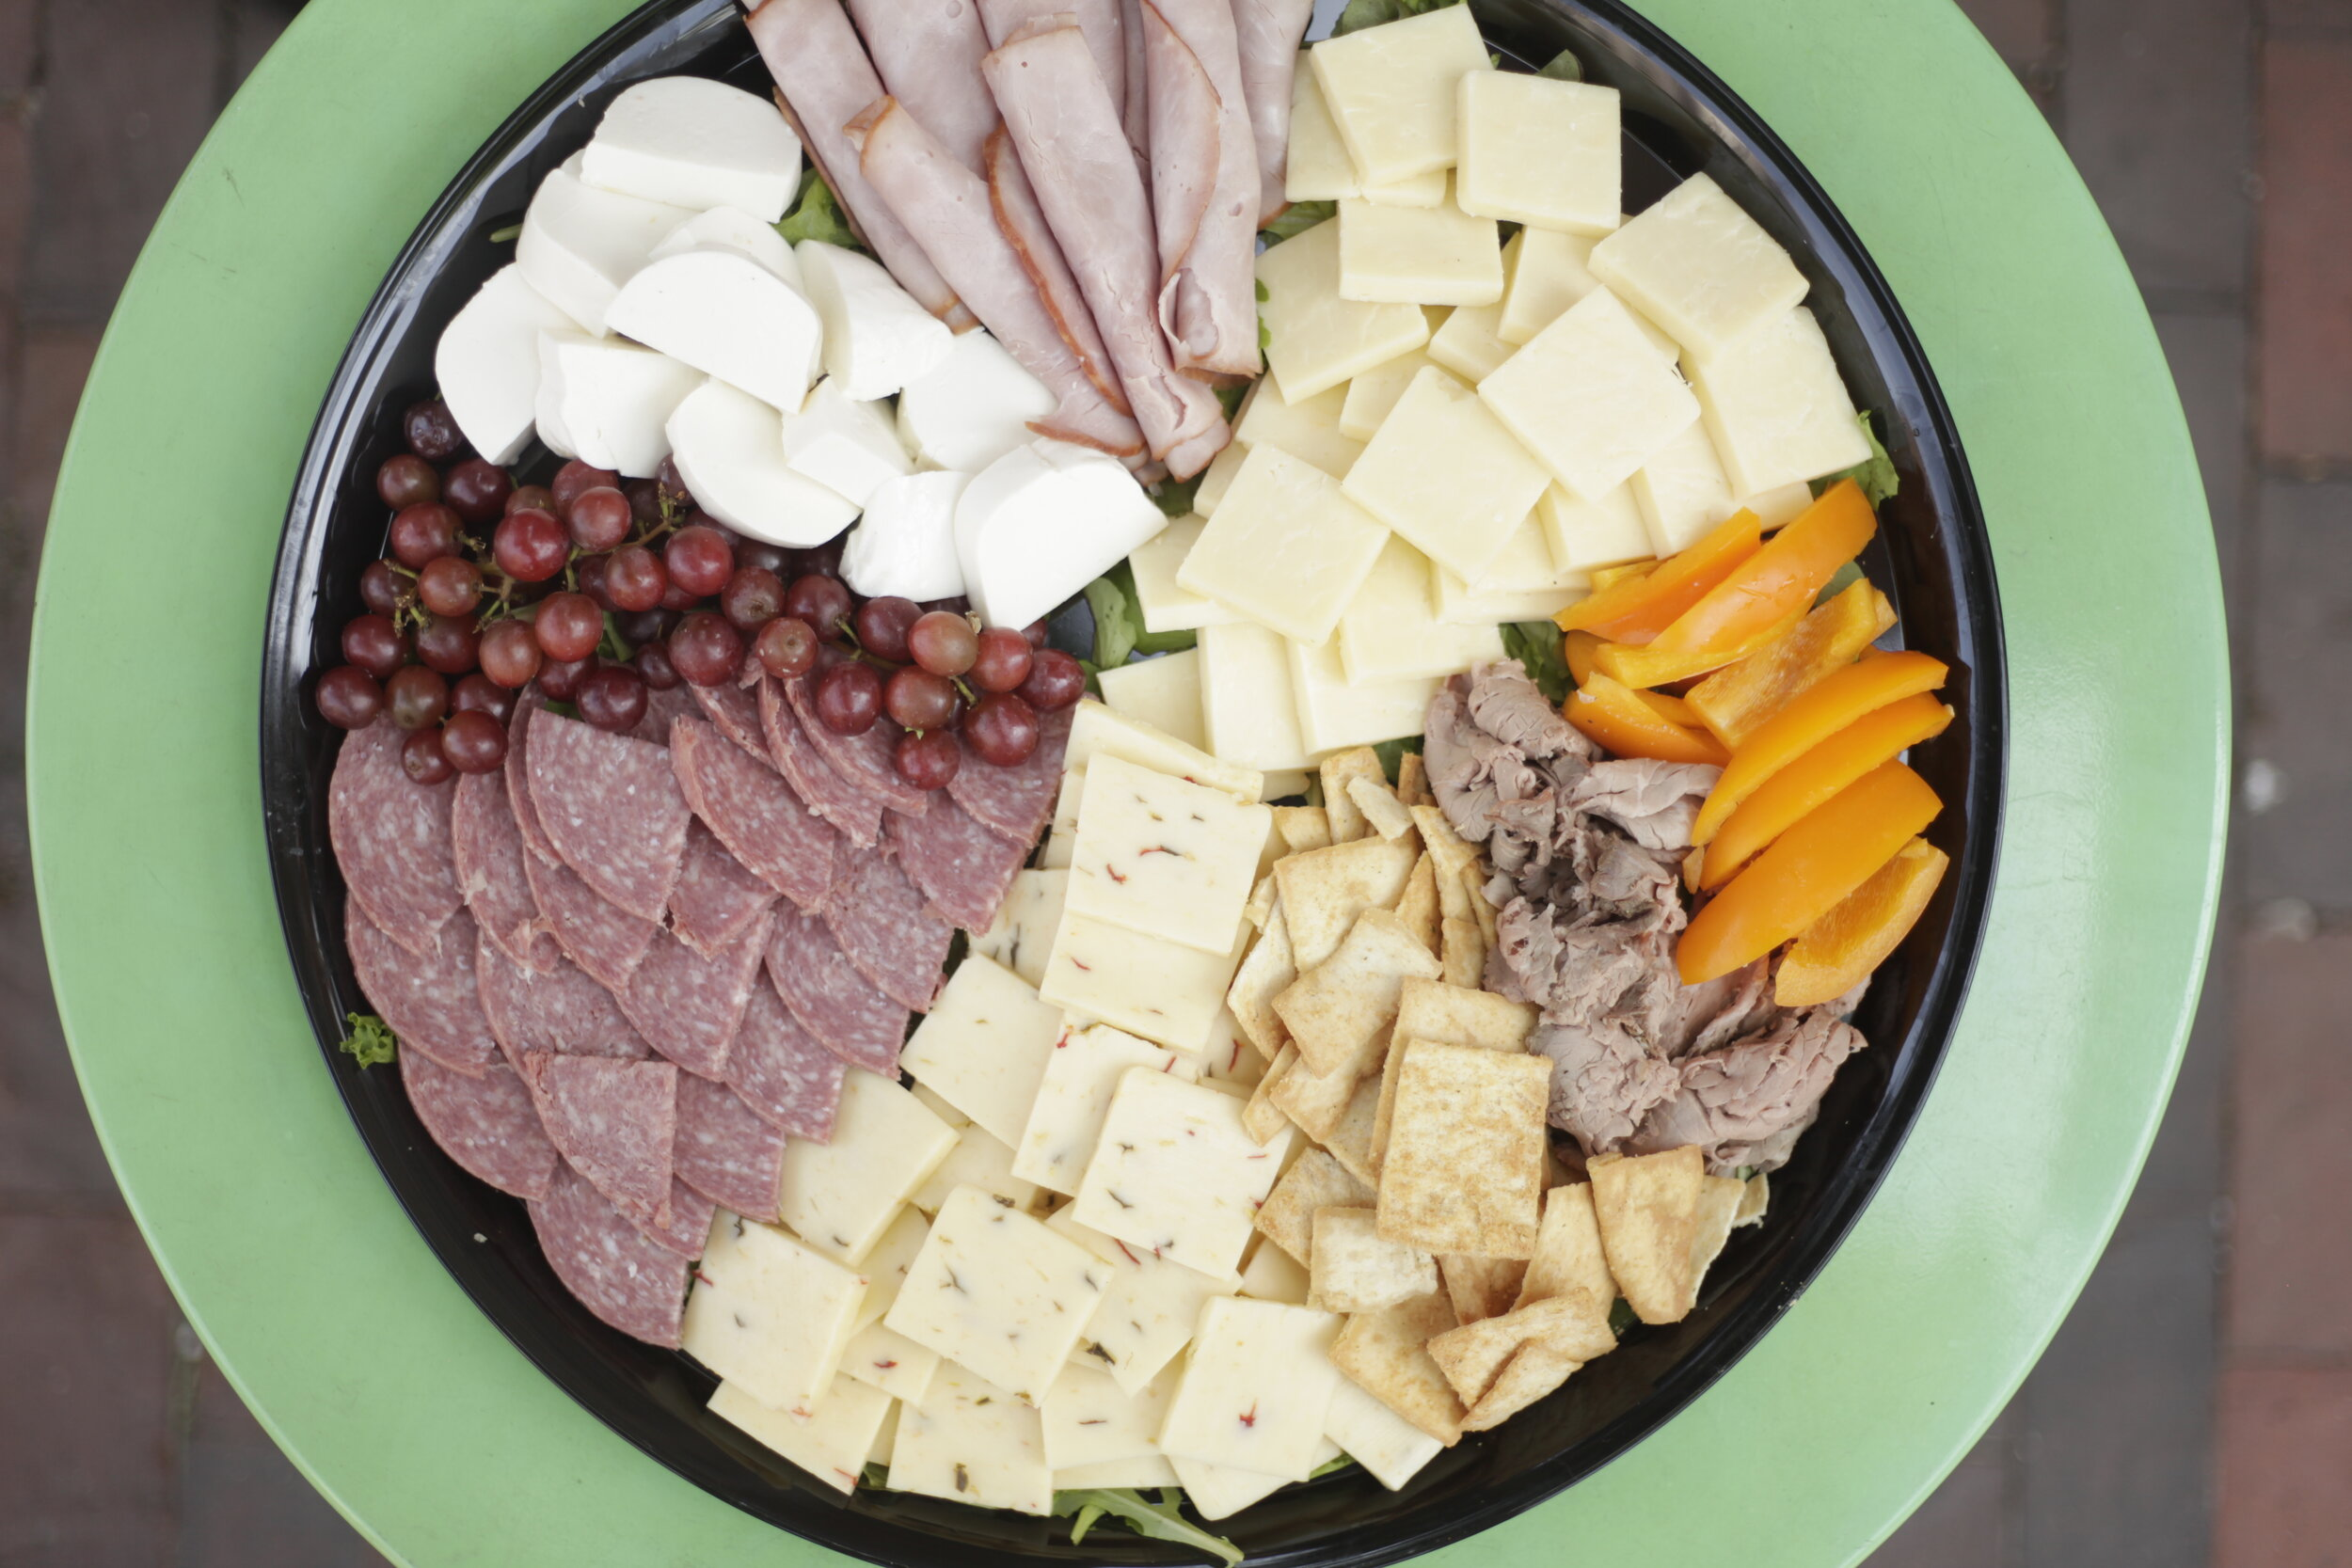 Meat and Cheese Platter - DAILY SELECTION OF ALL NATURAL MEAT & LOCAL CHEESE$50